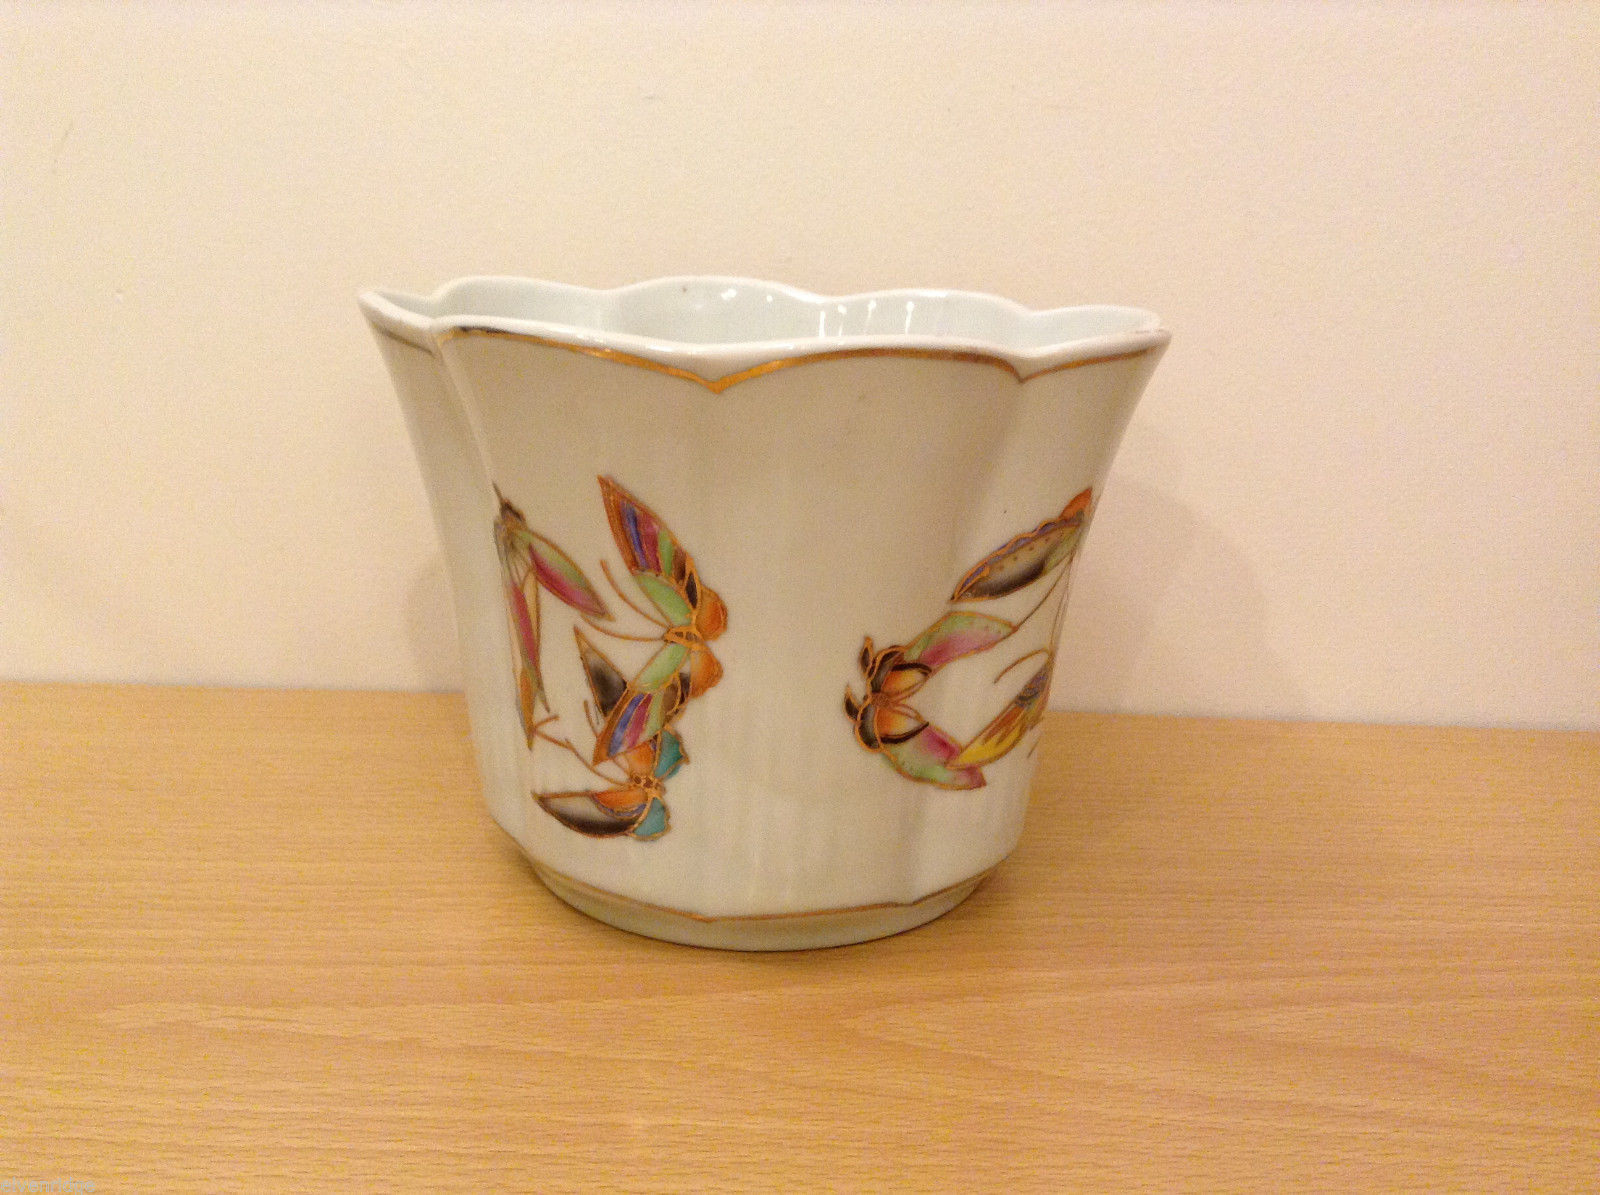 Vintage White Porcelain Pottery Vase with Moths Butterflies Hand Painted